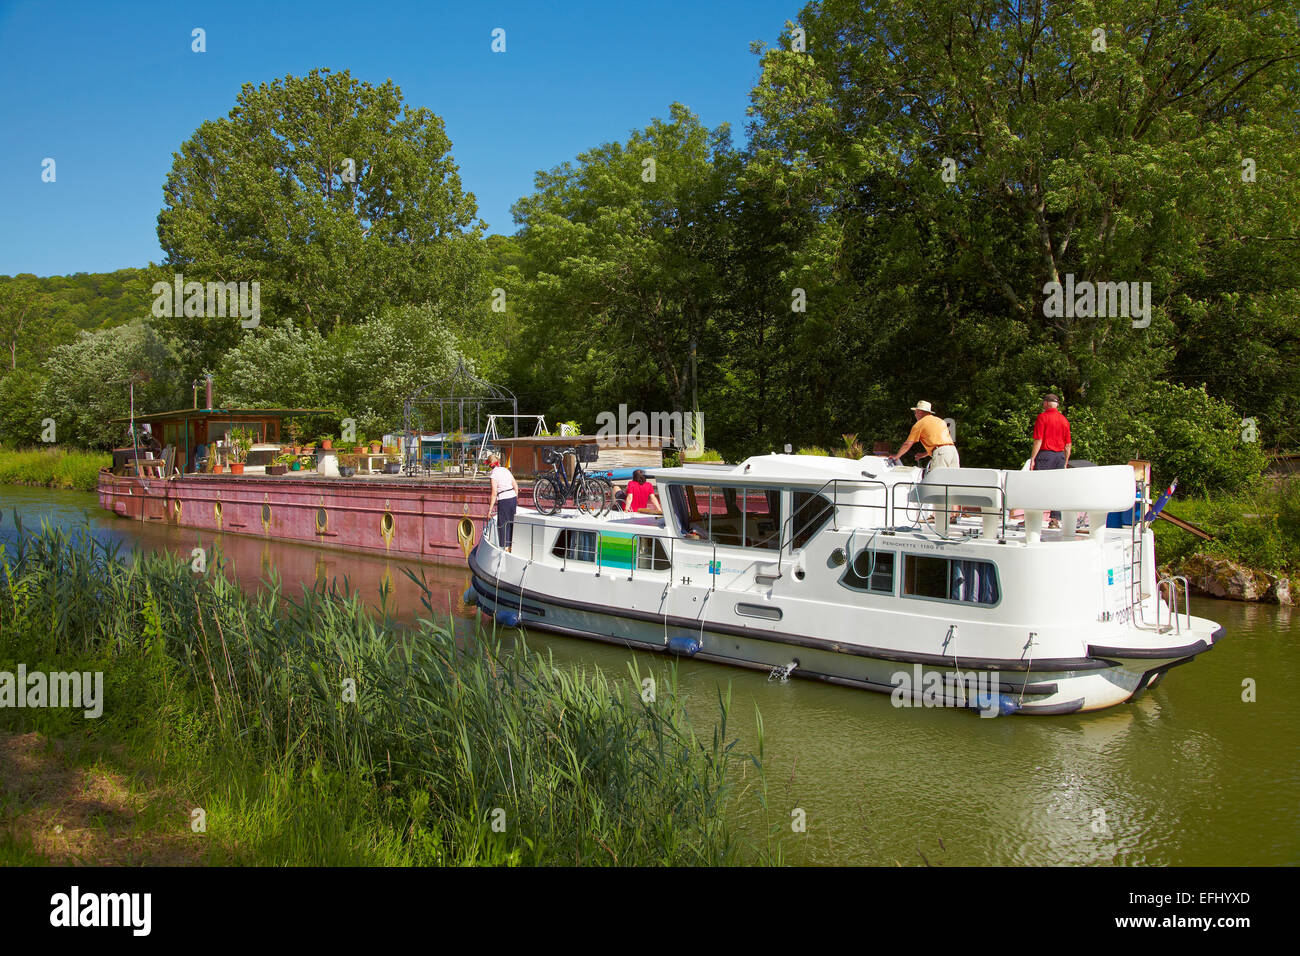 Houseboat in the Doubs-Rhine-Rhone-channel at Double lock 54-55 Rancenay, PK 63, Doubs, Region Franche-Comte, France, Stock Photo